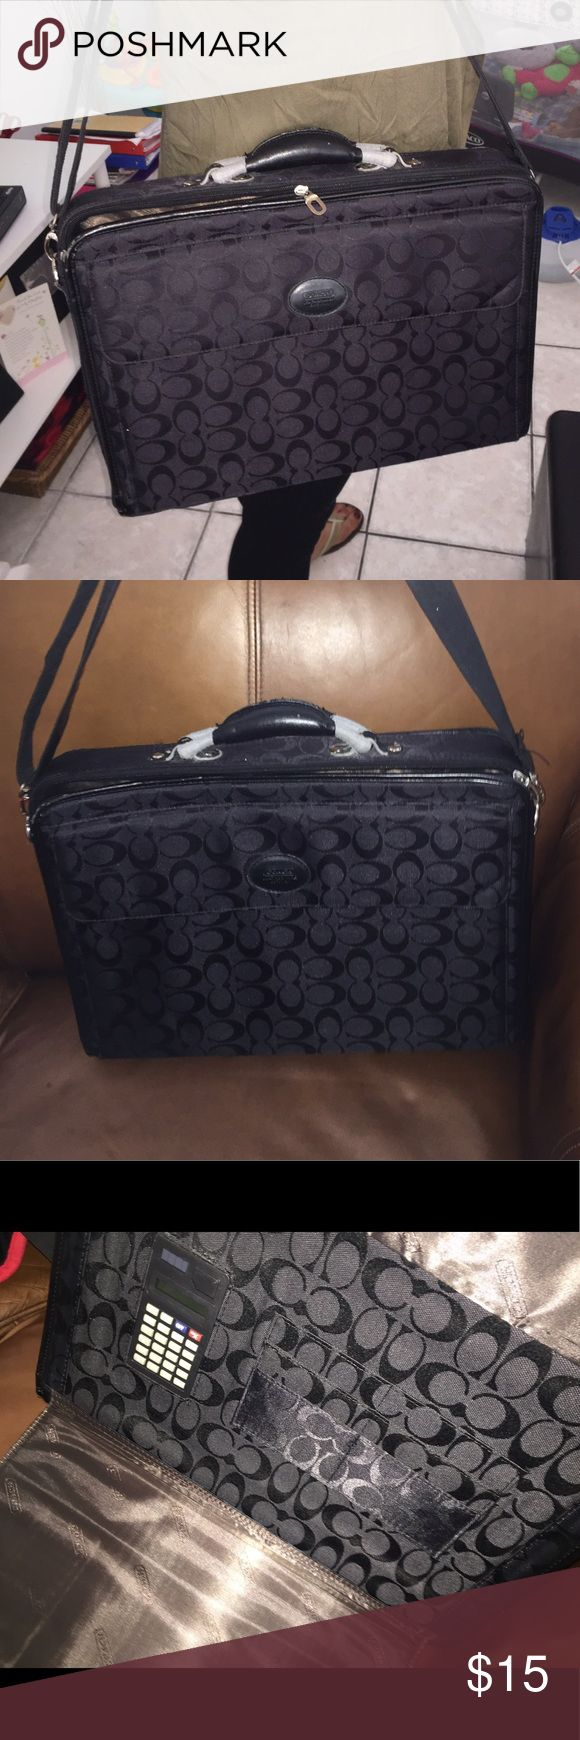 """Coach briefcase / laptop case It is used and has fraying and scuffs but it is useable. I used it for my 15-17"""" hp. Many compartments. Outside flap has A calculator and pockets. Then there is an inside with a separator where I would put books and notebooks. The other side has a big compartment where I pile out my laptop and charger. There is also a deep outside pocket. What you see is what you get. Priced low to sell.  CHeck out my other listings! Coach Bags Laptop Bags"""